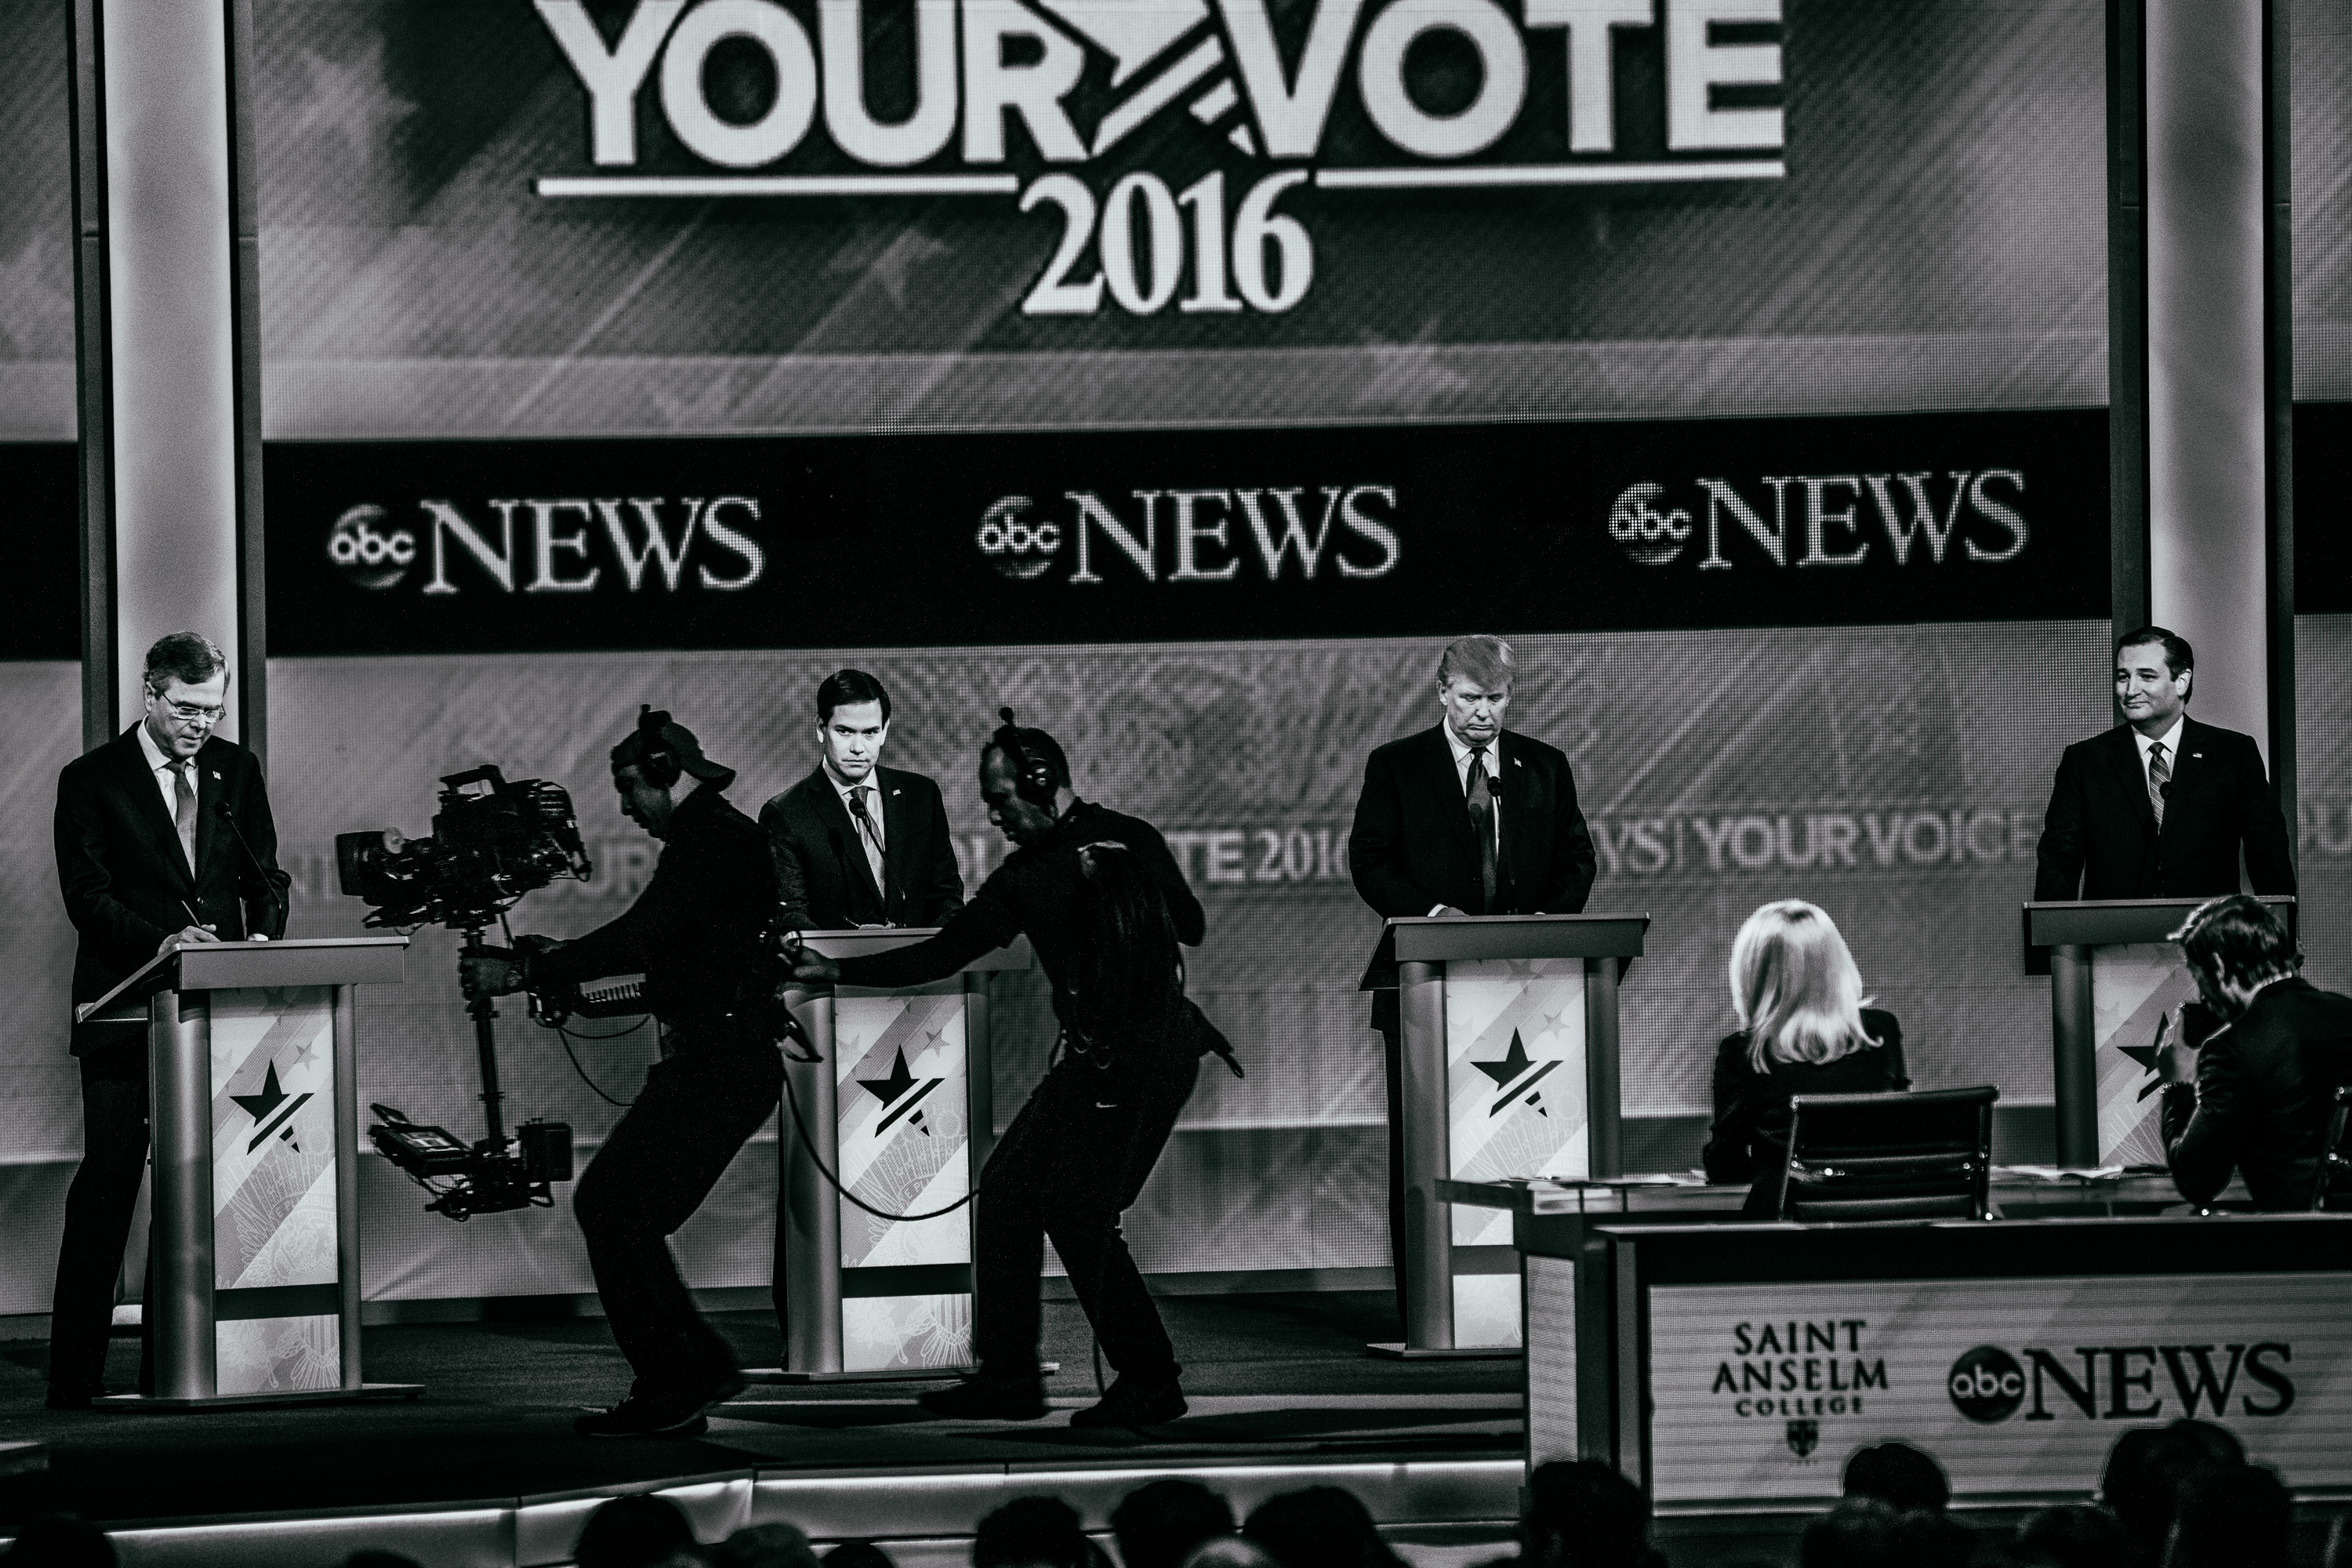 Republican presidential candidates, from left, Jeb Bush, Marco Rubio, Donald Trump and Ted Cruz appear during the Republican presidential debate on Feb. 6, 2016, in Manchester, N.H.